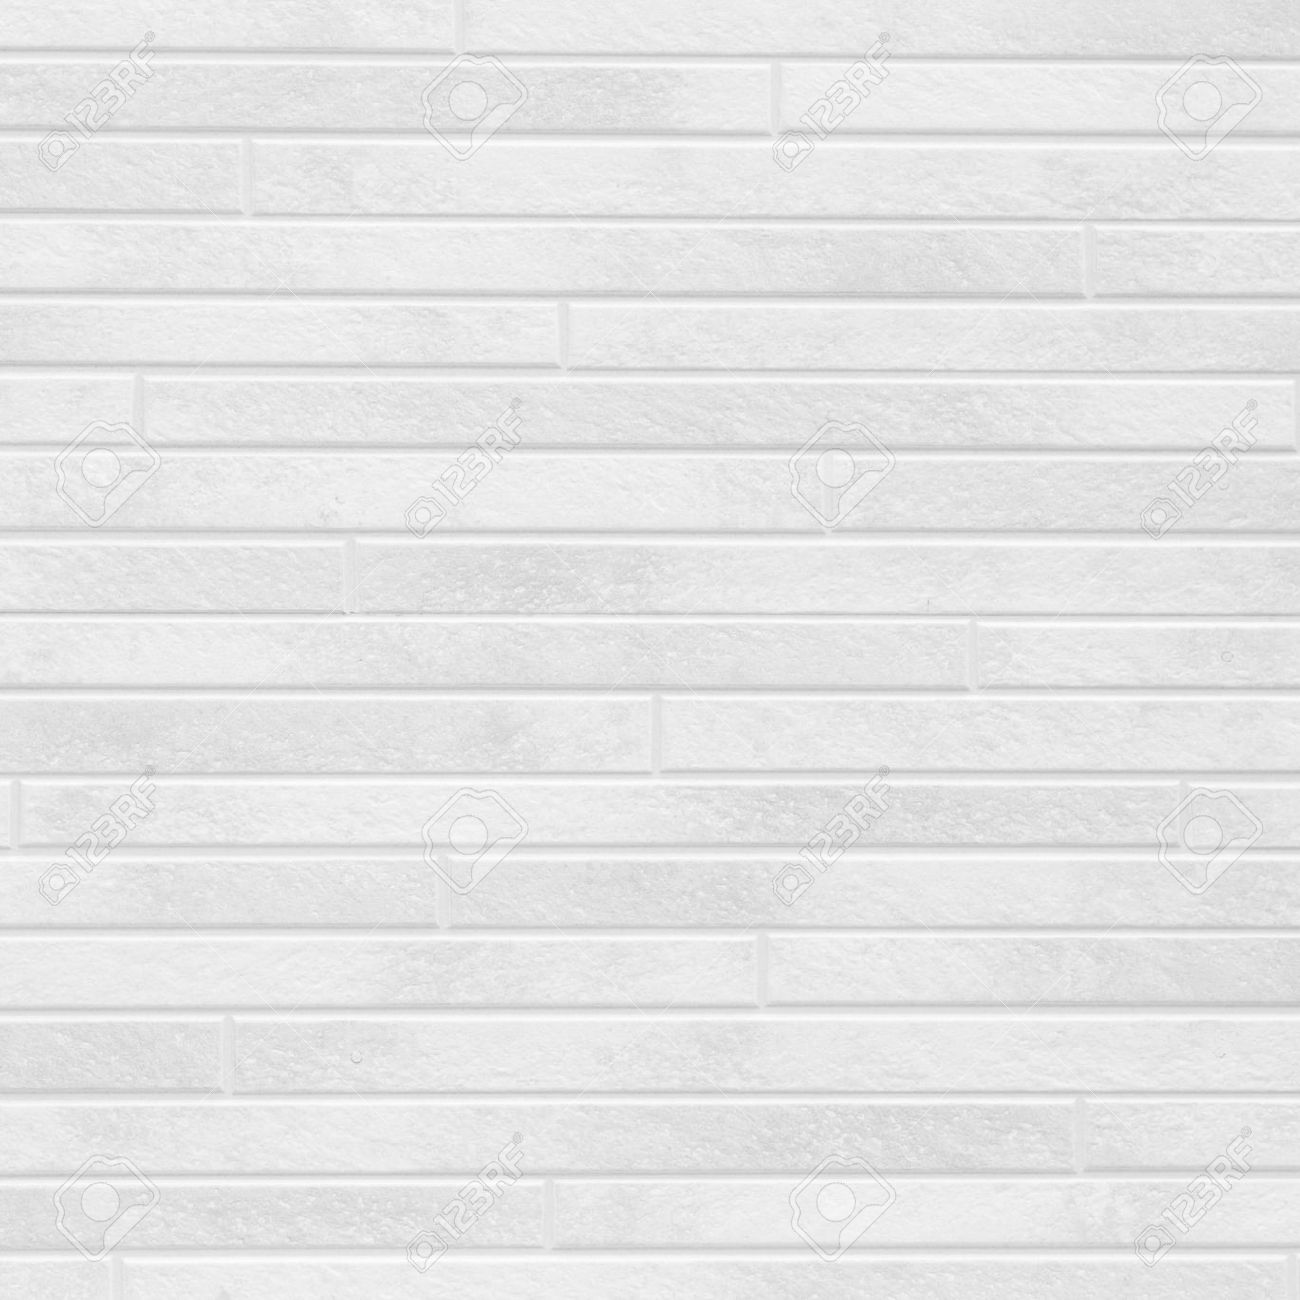 The modern white concrete tile wall background and texture . - 58009990